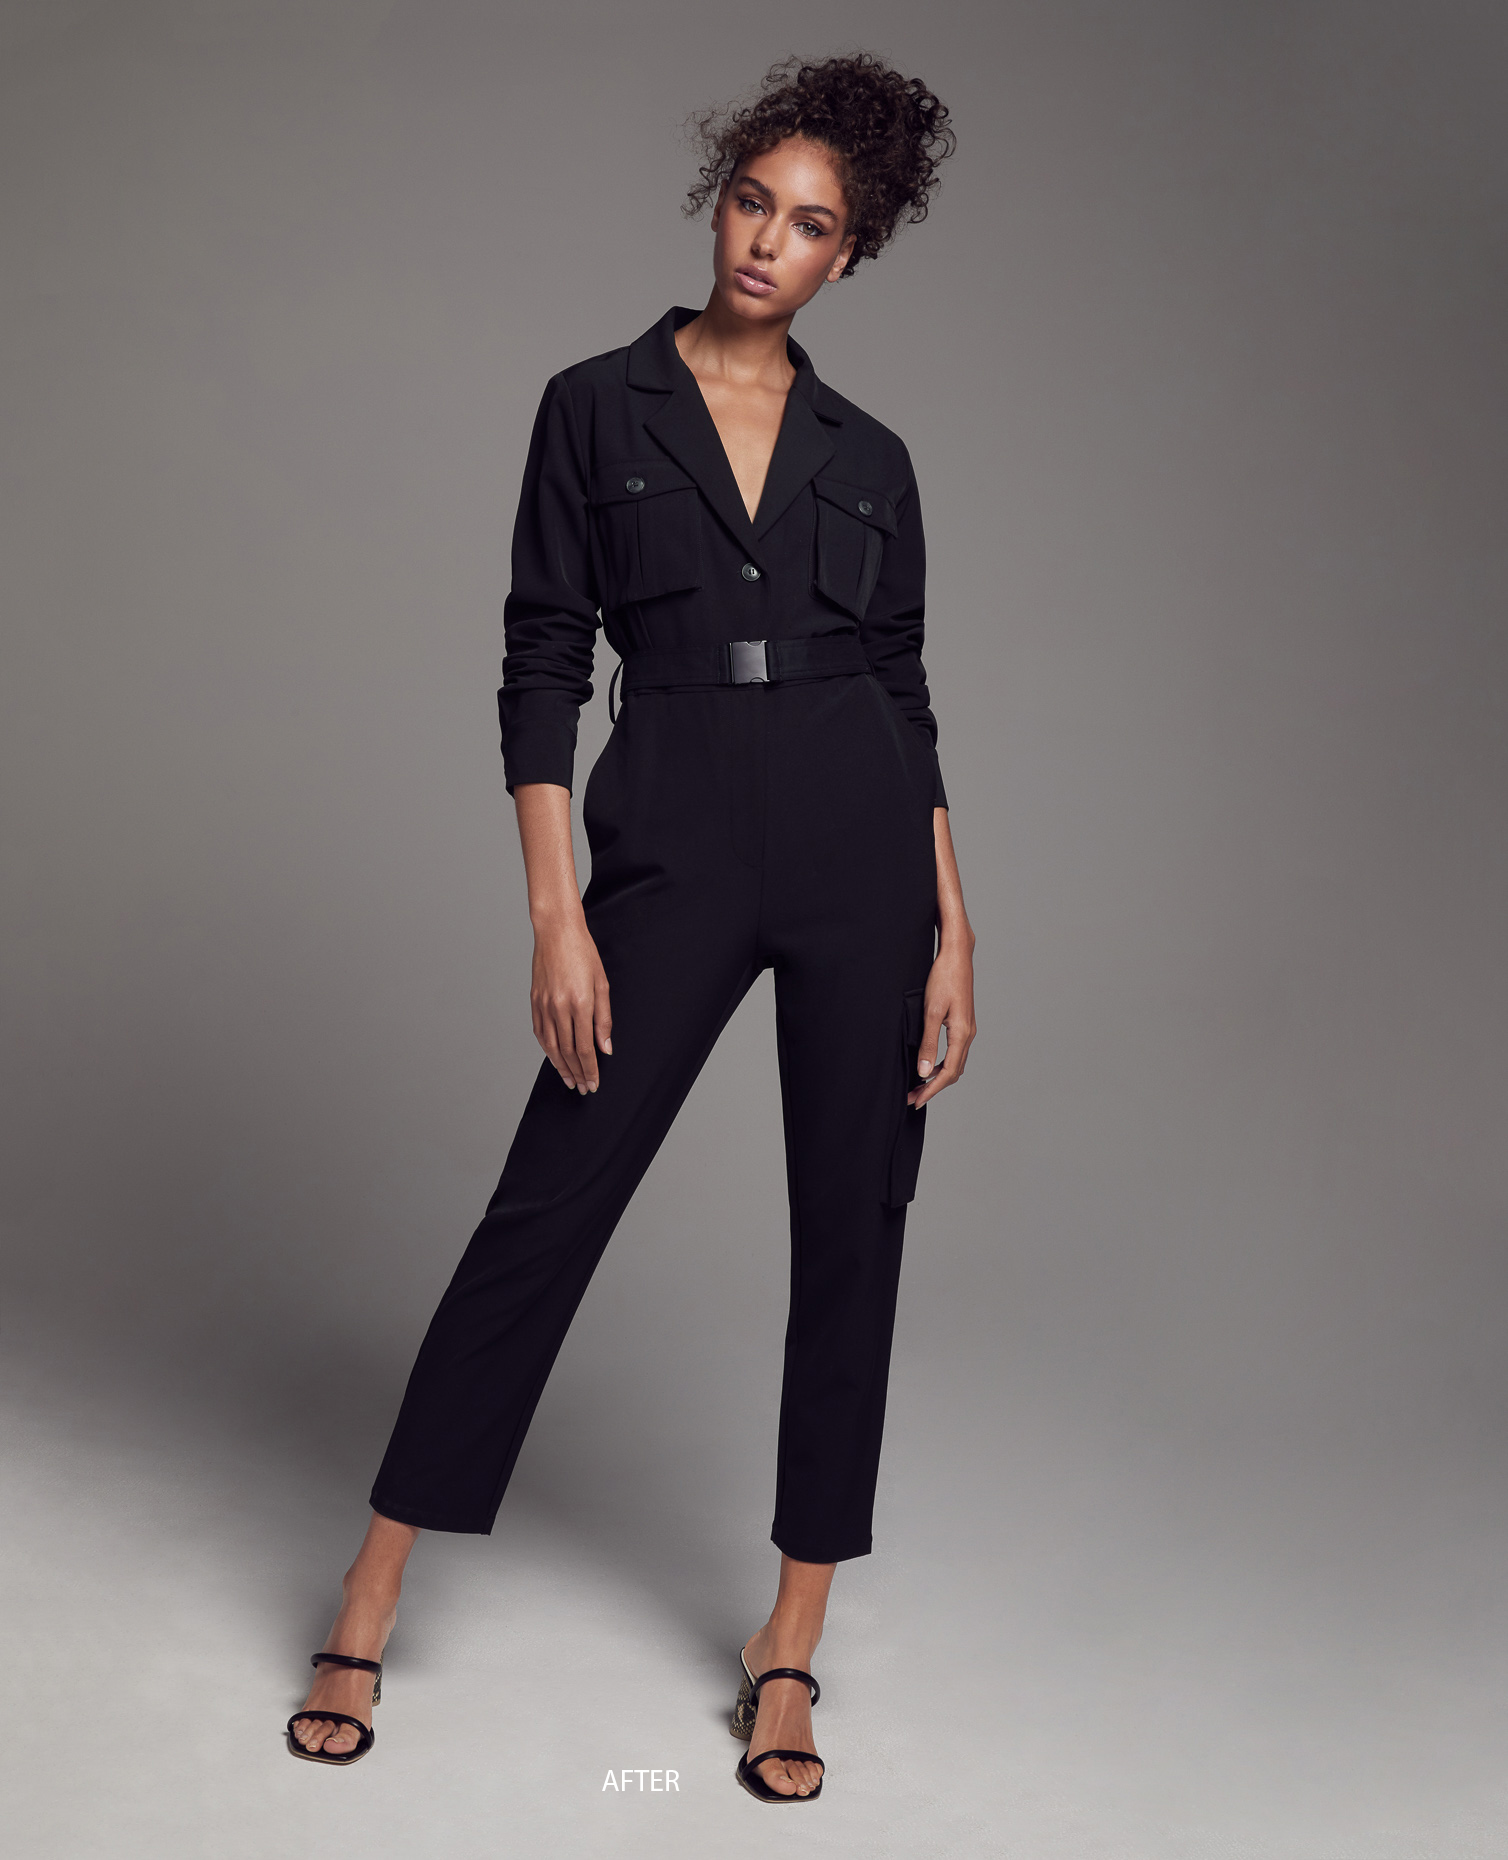 0919W2_RTW_TrendBoilerSuits_OF1_056a